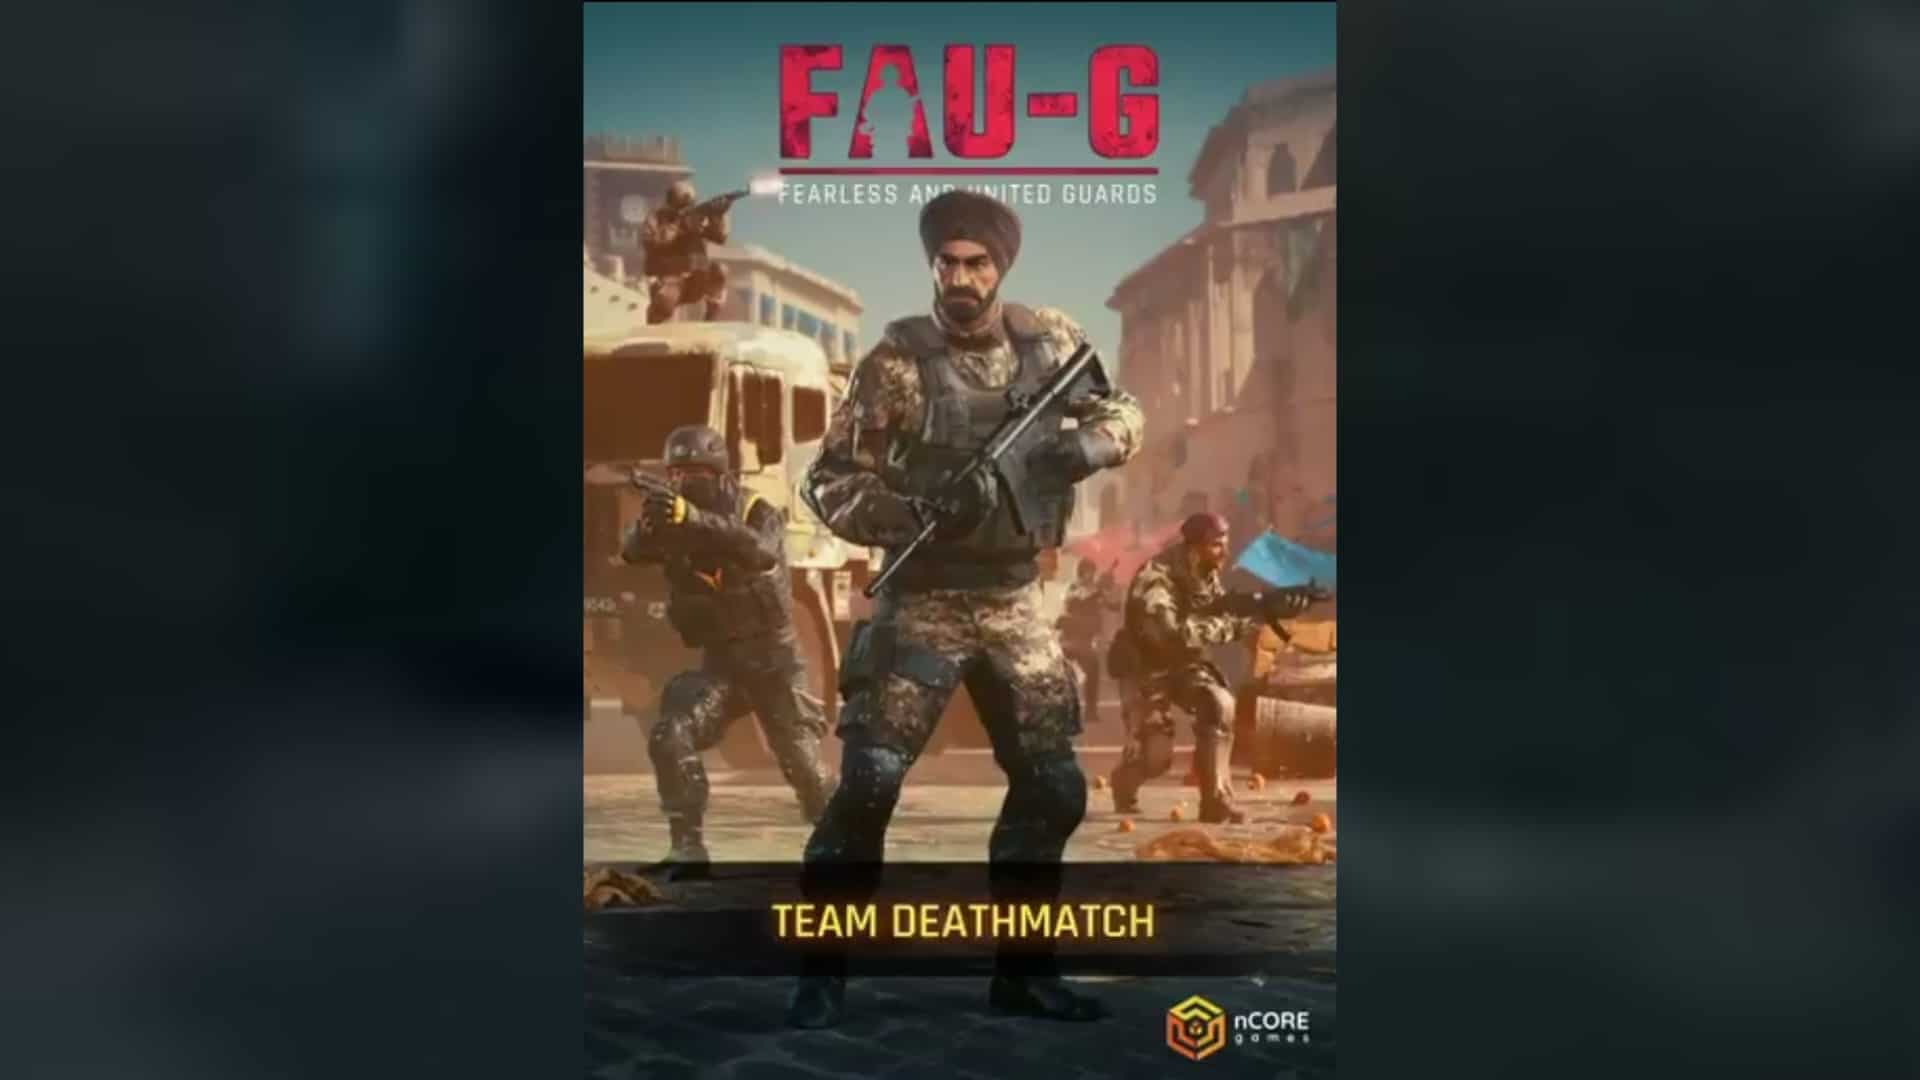 FAU-G Team Deathmatch Mode to Come Soon, Announces Creator nCore Games